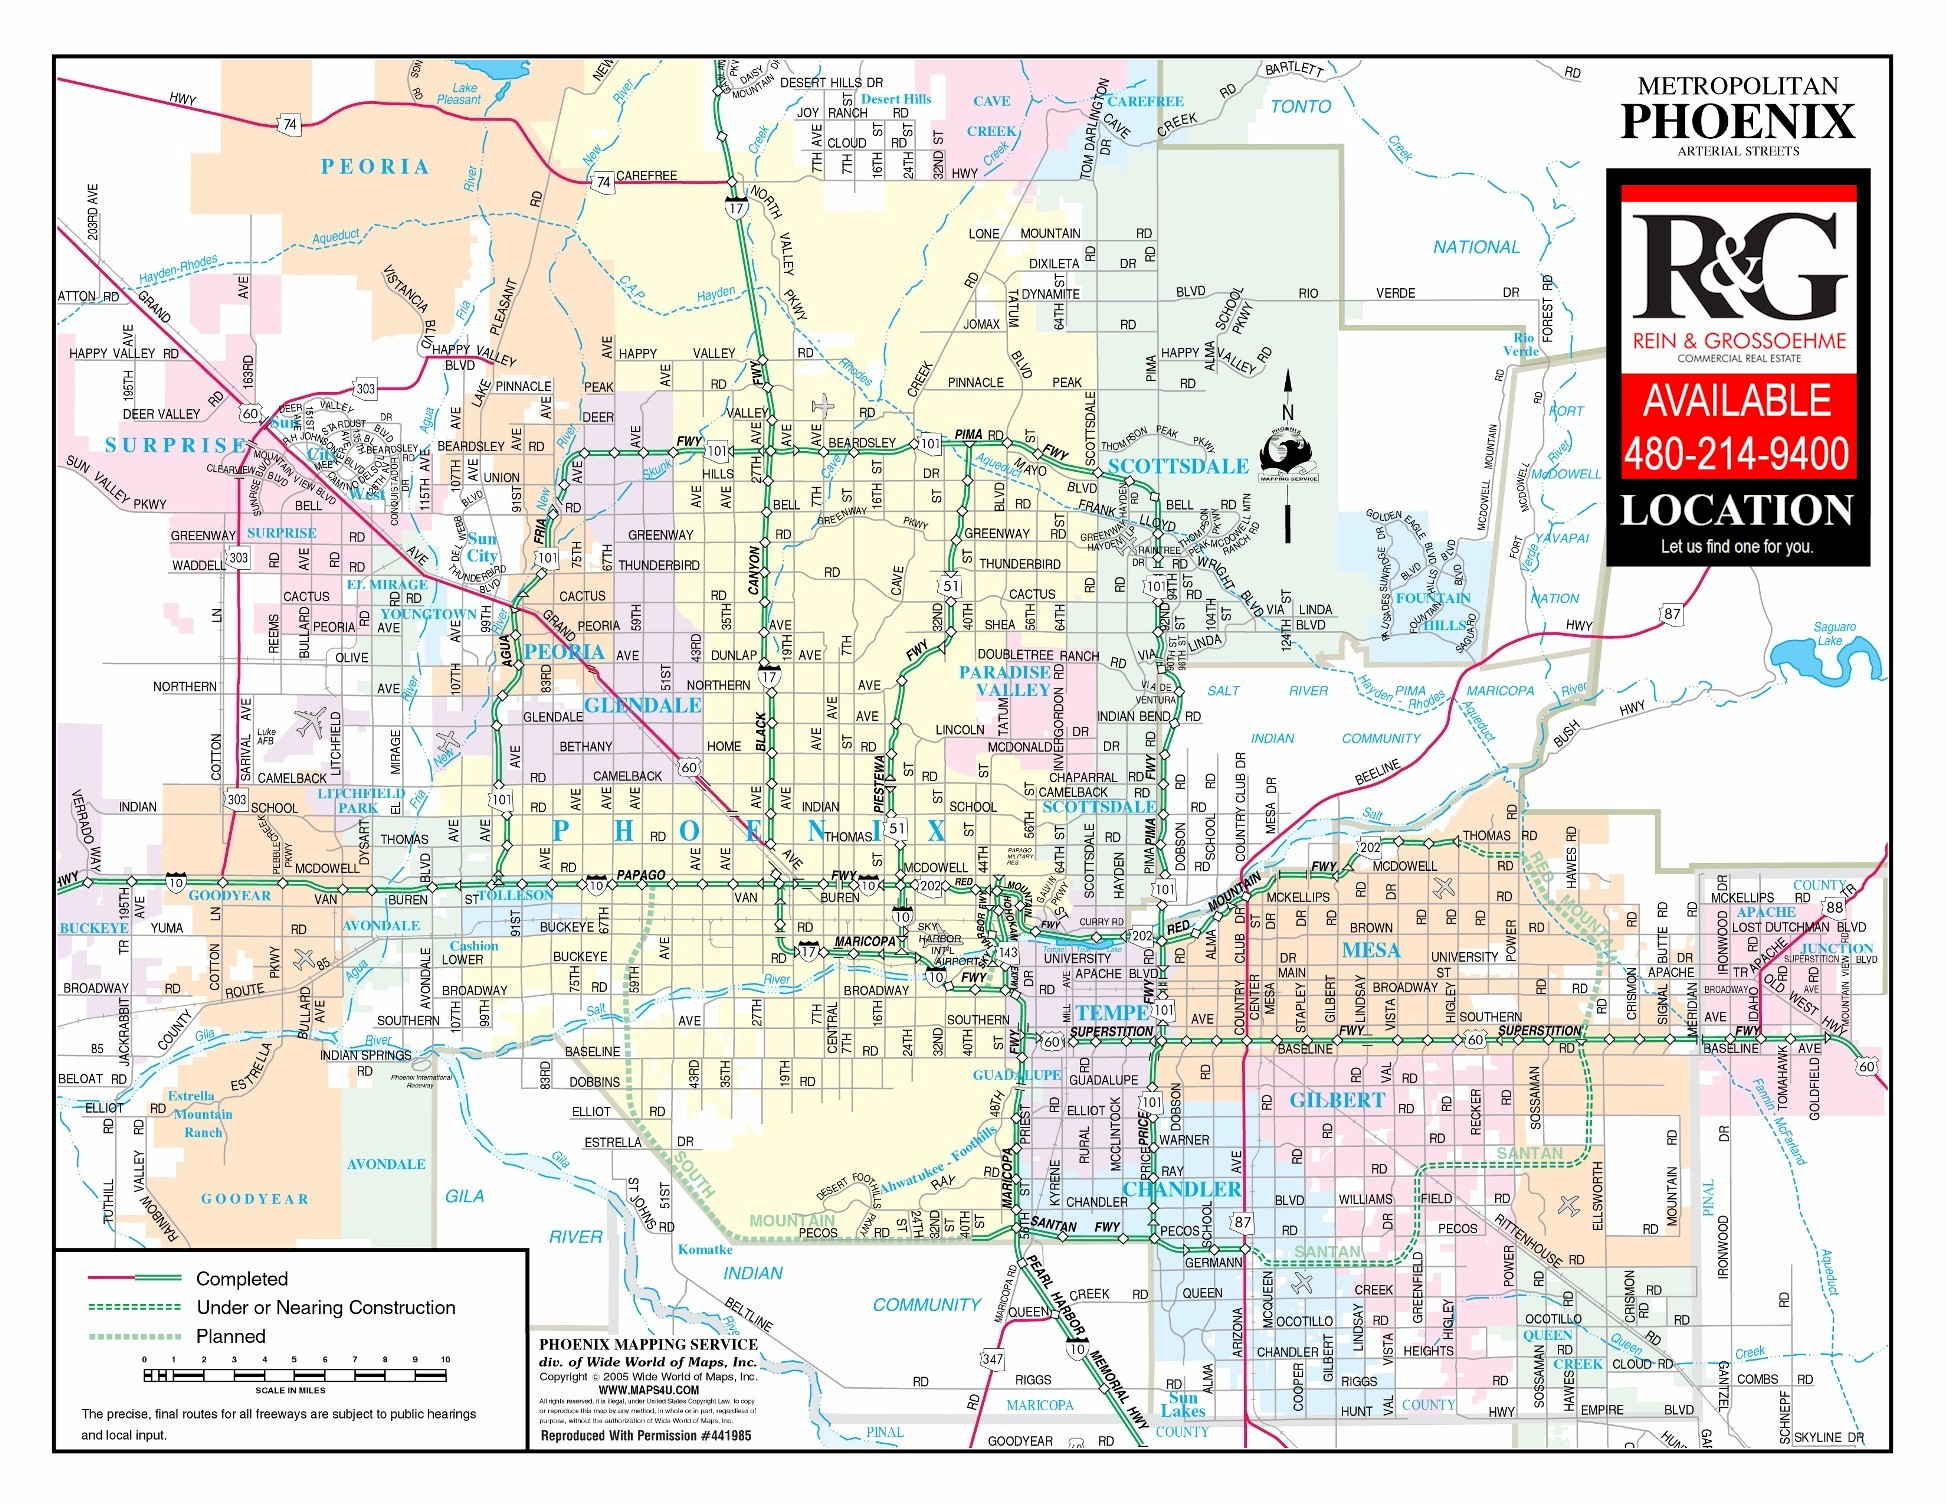 Phoenix Arizona Map REIN GROSSOEHME Commercial Real Estate - Arizona map